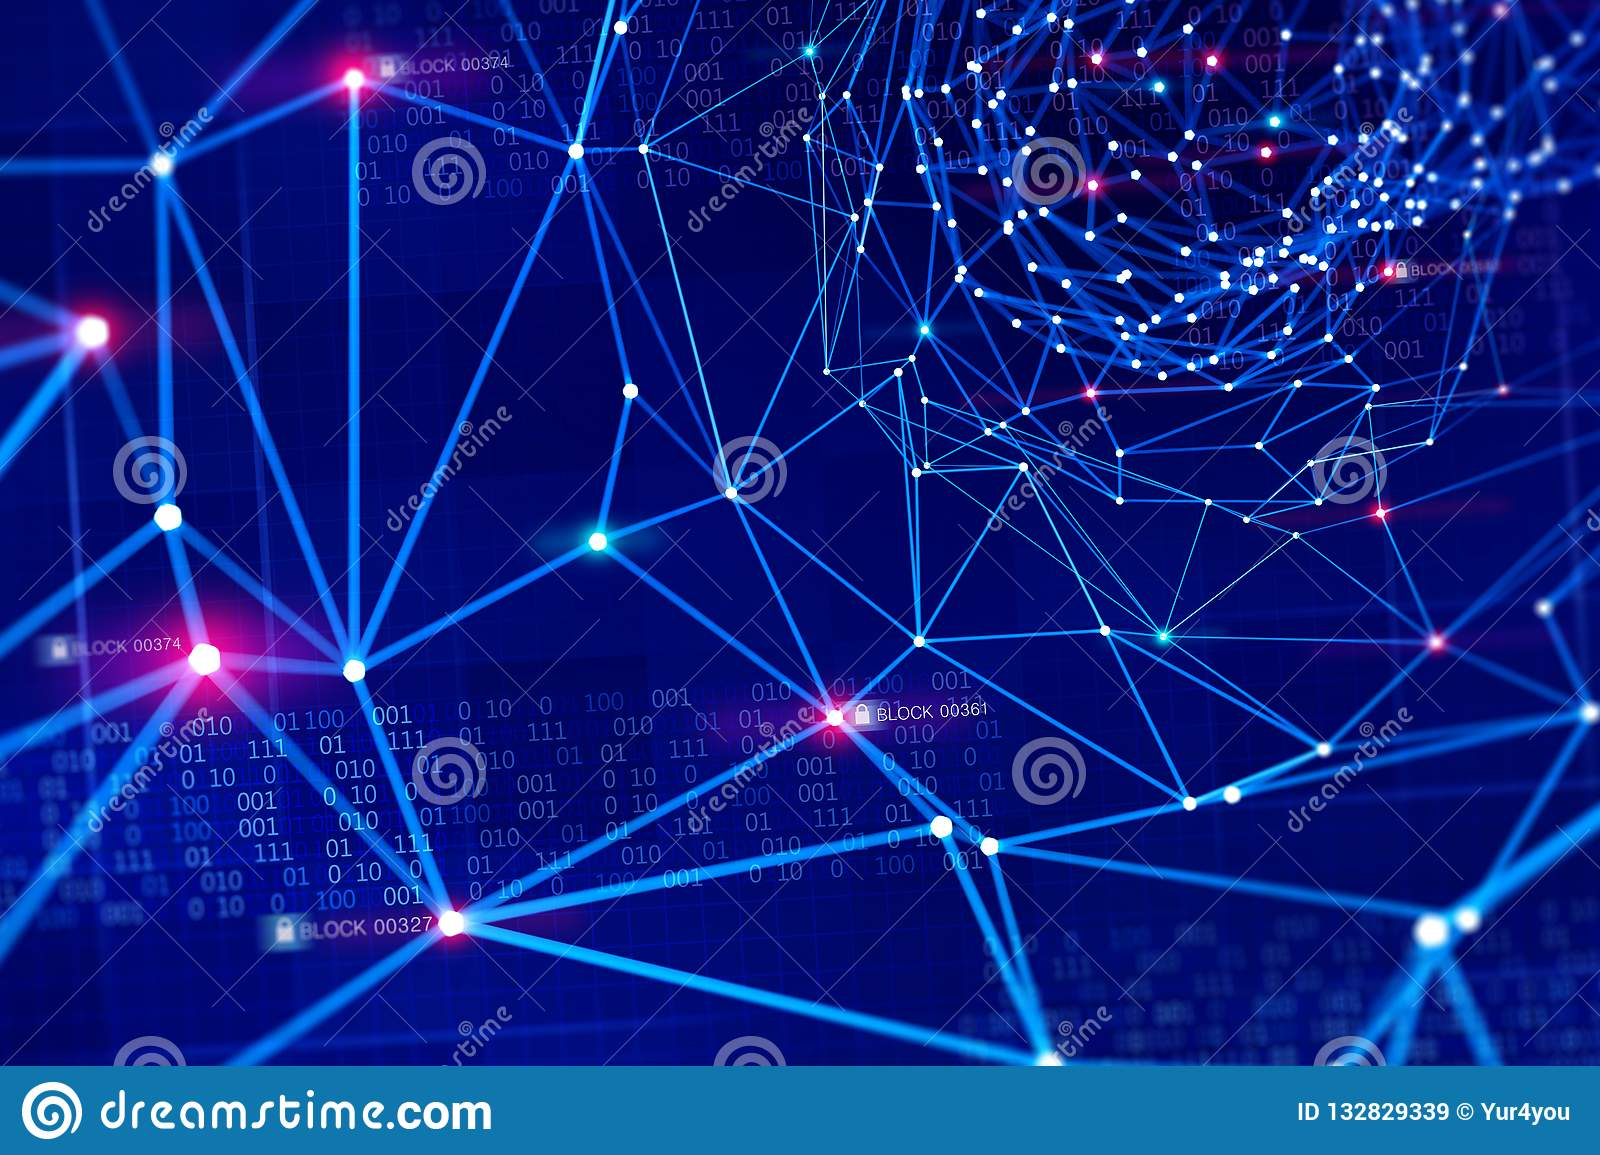 Global Information Network. Protection and storage of digital data using the blockchain technology. Artificial intelligence based